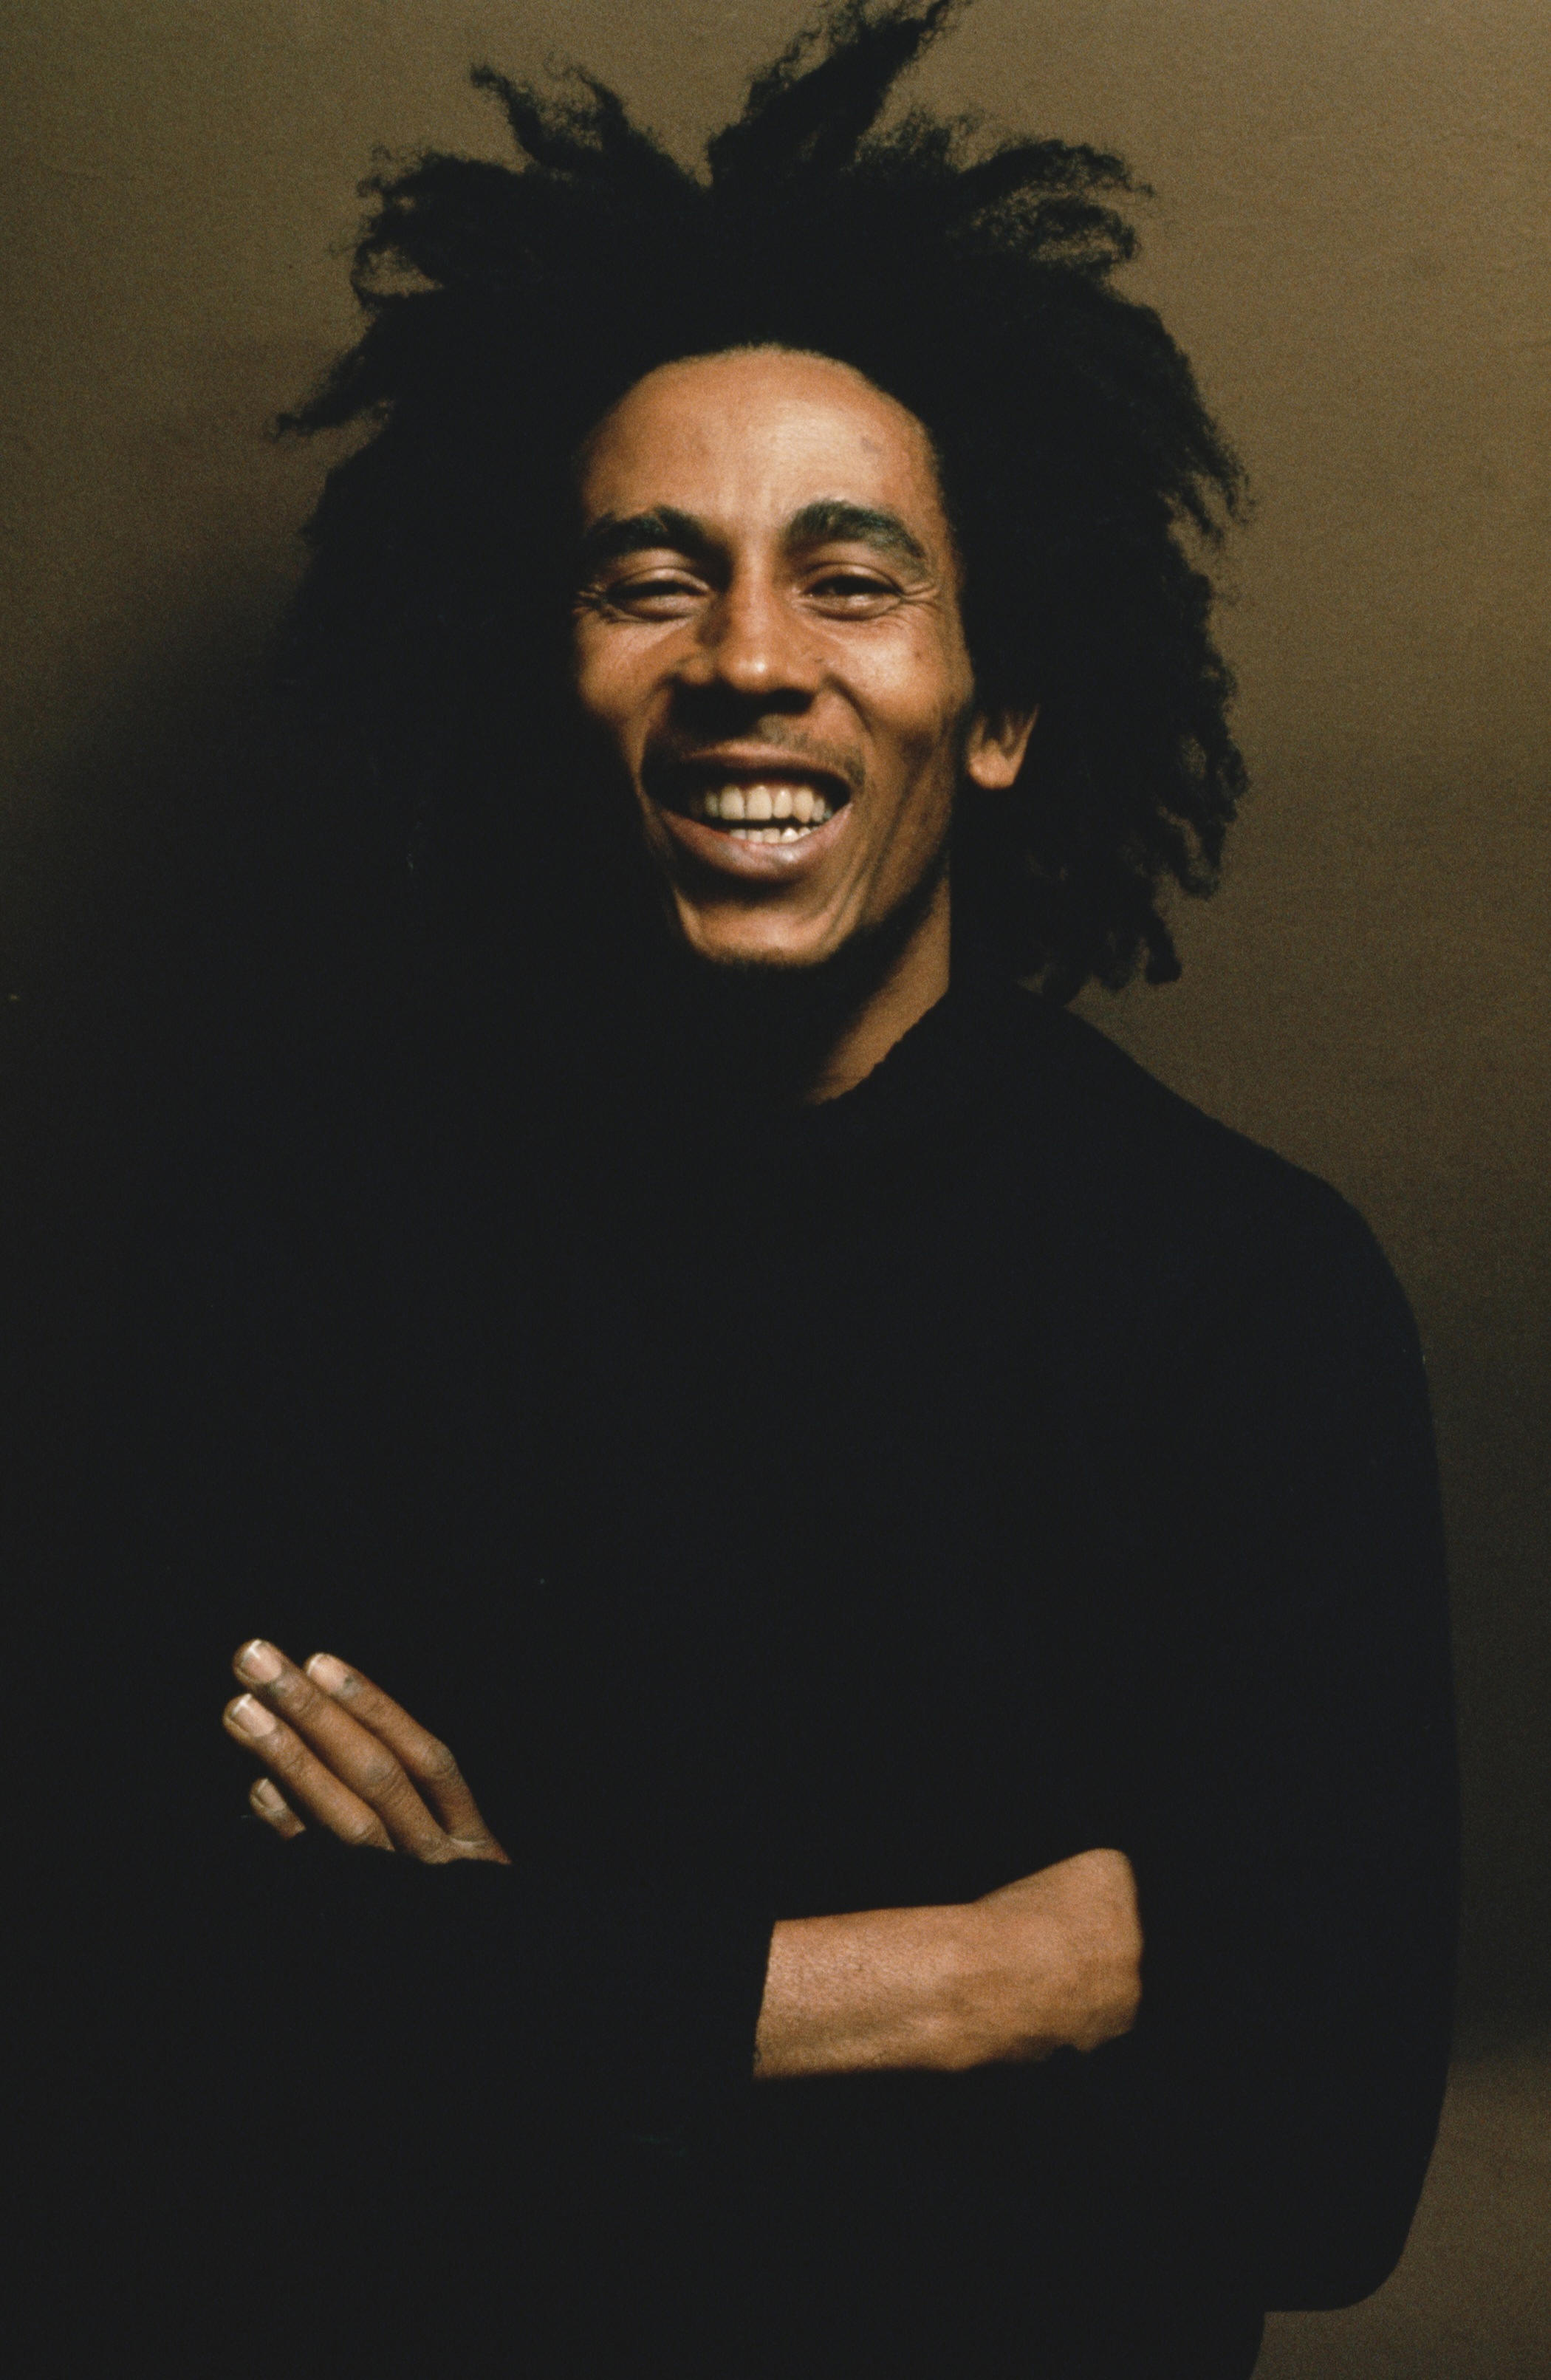 movie review marley poet and prophet of peace musician and marley prophet of peace poet of justice lover of the people bob marley